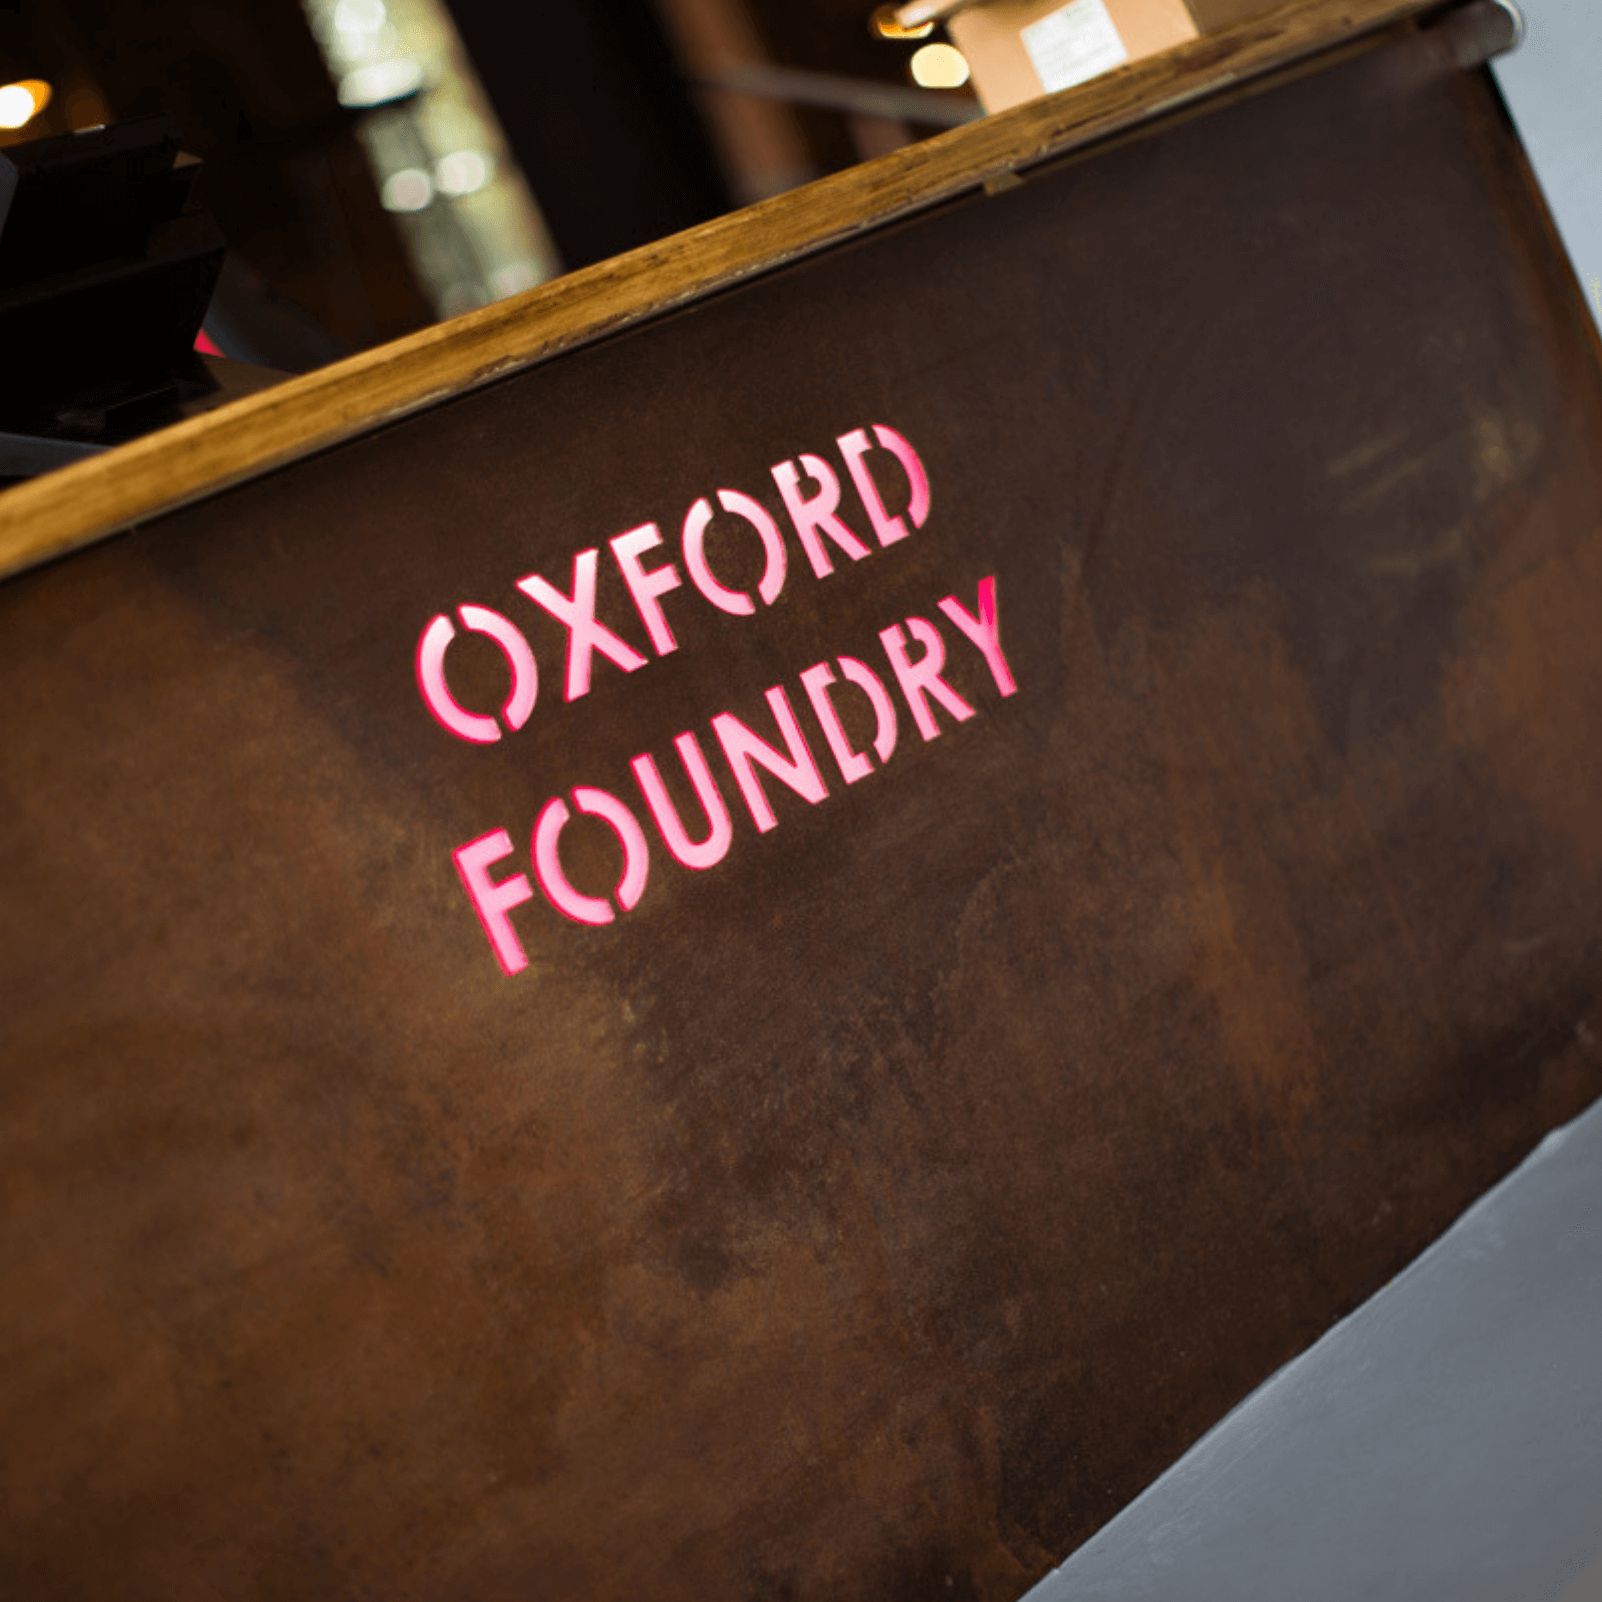 Oxford Foundry